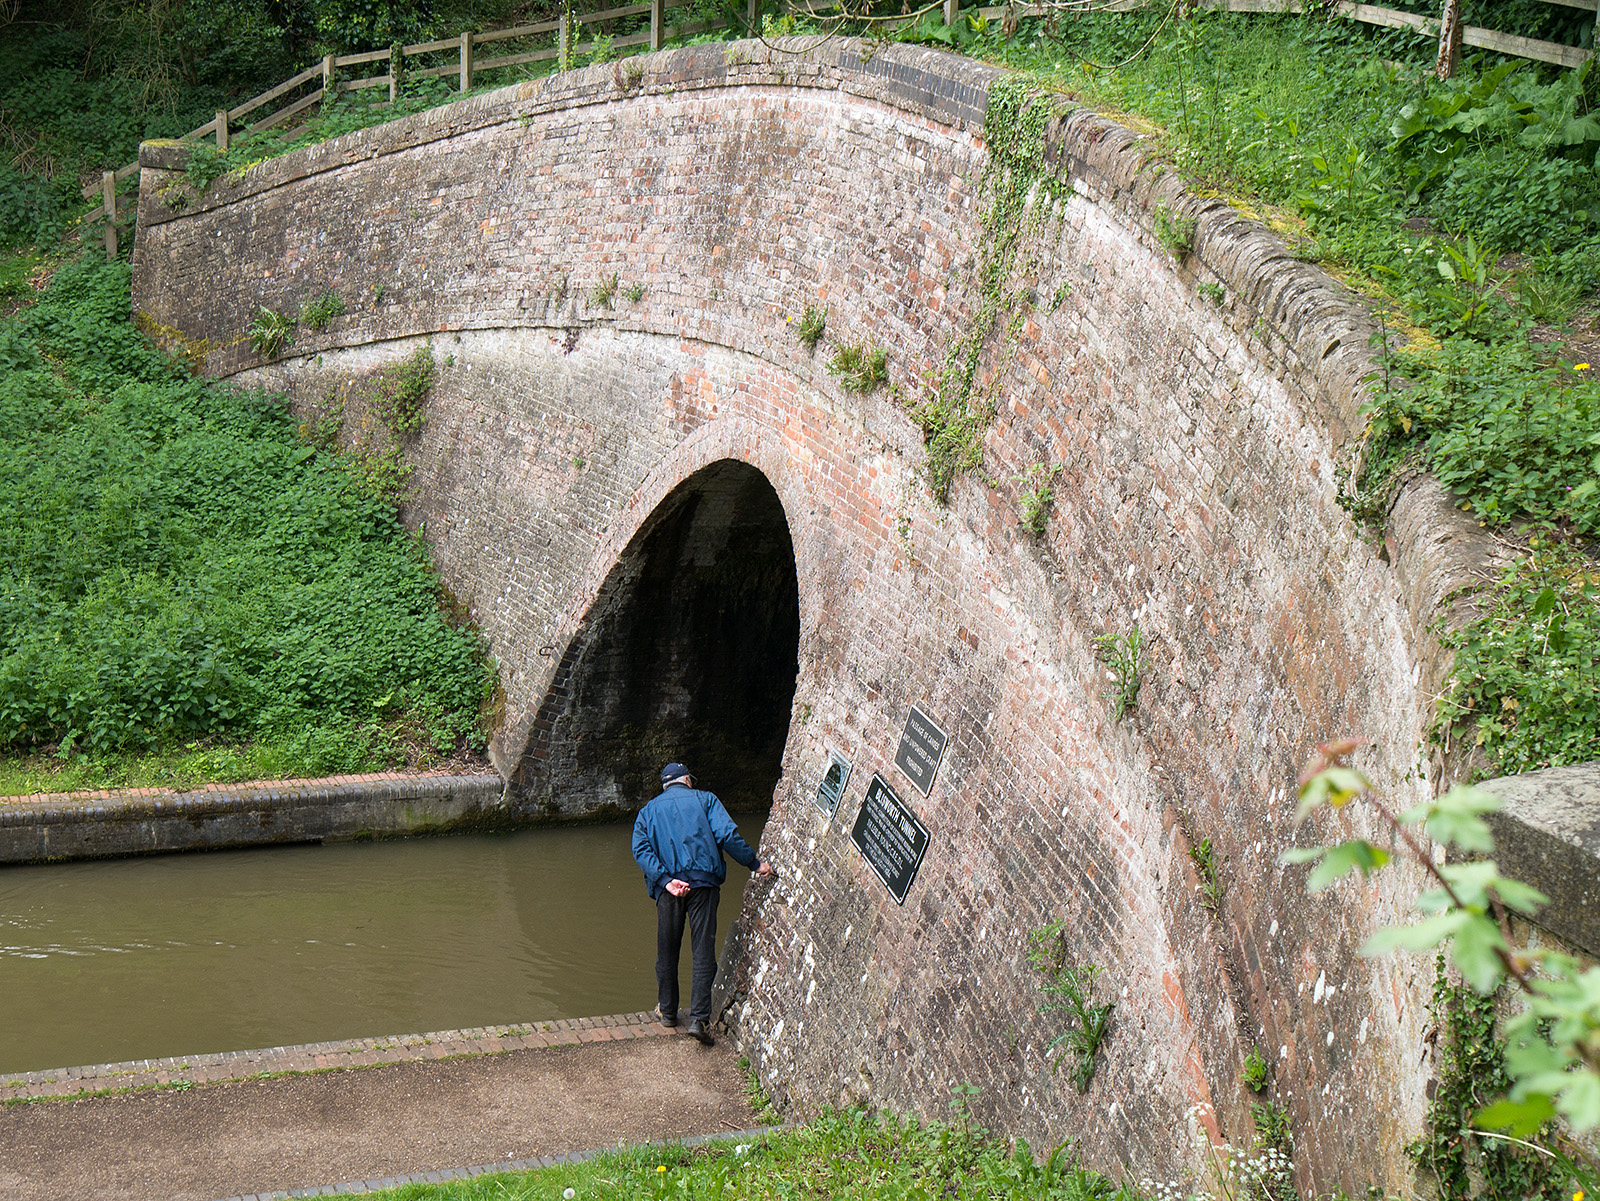 Looking down on the entrance to the tunnel - notice no towpath in the tunnel